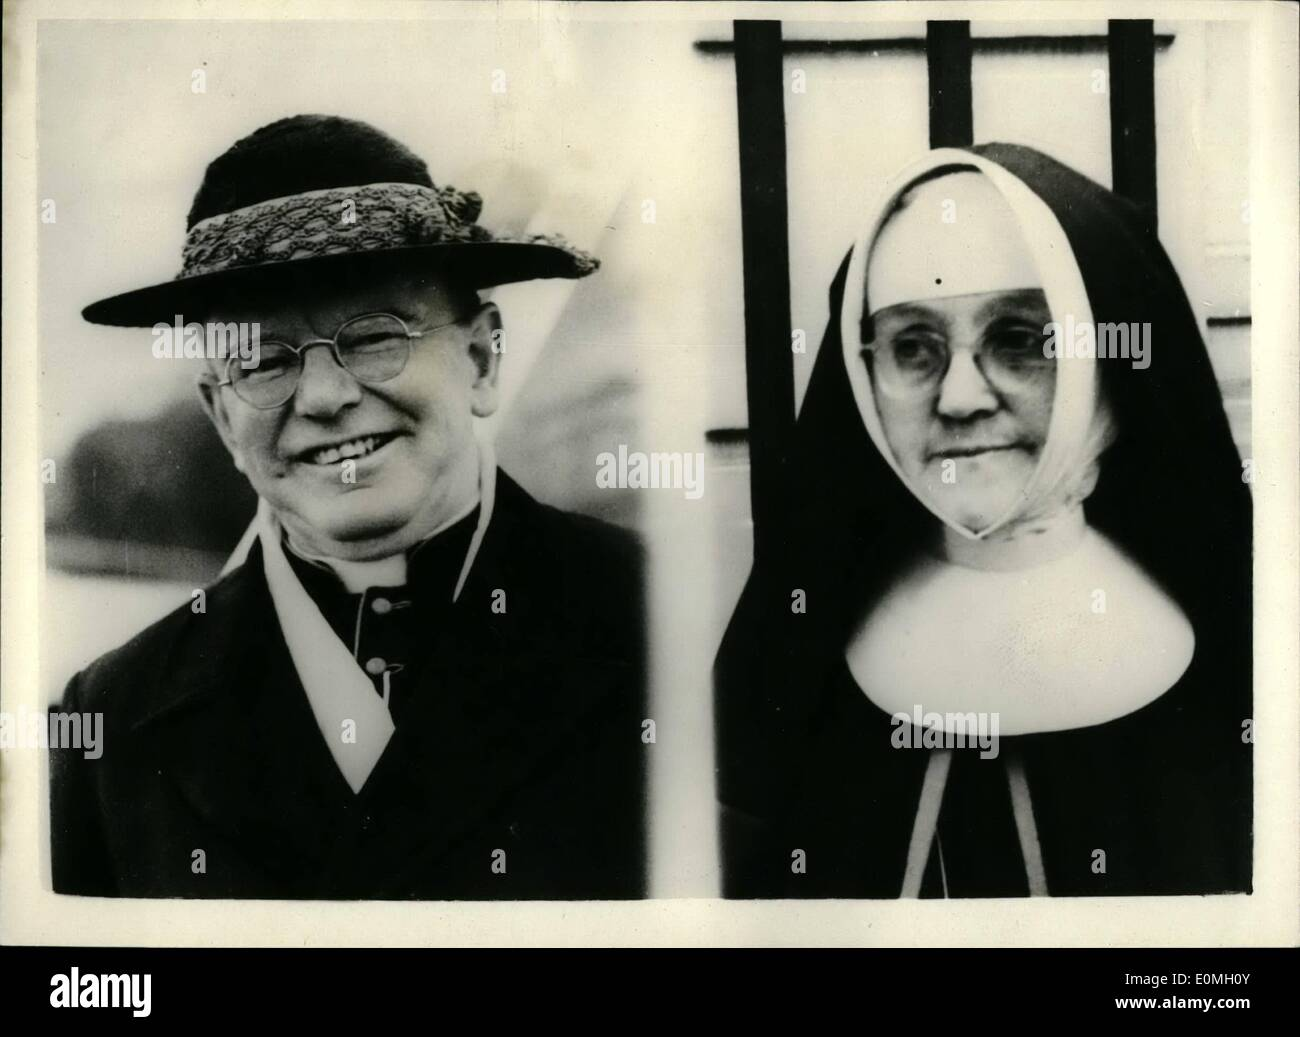 Jul. 07, 1955 - Nun Sue Cardinal Griffin Says ''I was Locked Up''... Alleges False Imprisonment and Assault. Miss Margaret McCann, 54 year old Nun who became a member of the Sisters of Nazareth in 1924, claimed damages in the Queen's bench division today, alleging false imprisonment and assault. Miss McCann's complaint was that she had been looked up in a mental home when there was no justification for suggesting that she had and unsoundness mind. Miss McCann is sueing Miss Winifred Collins, representing St - Stock Image